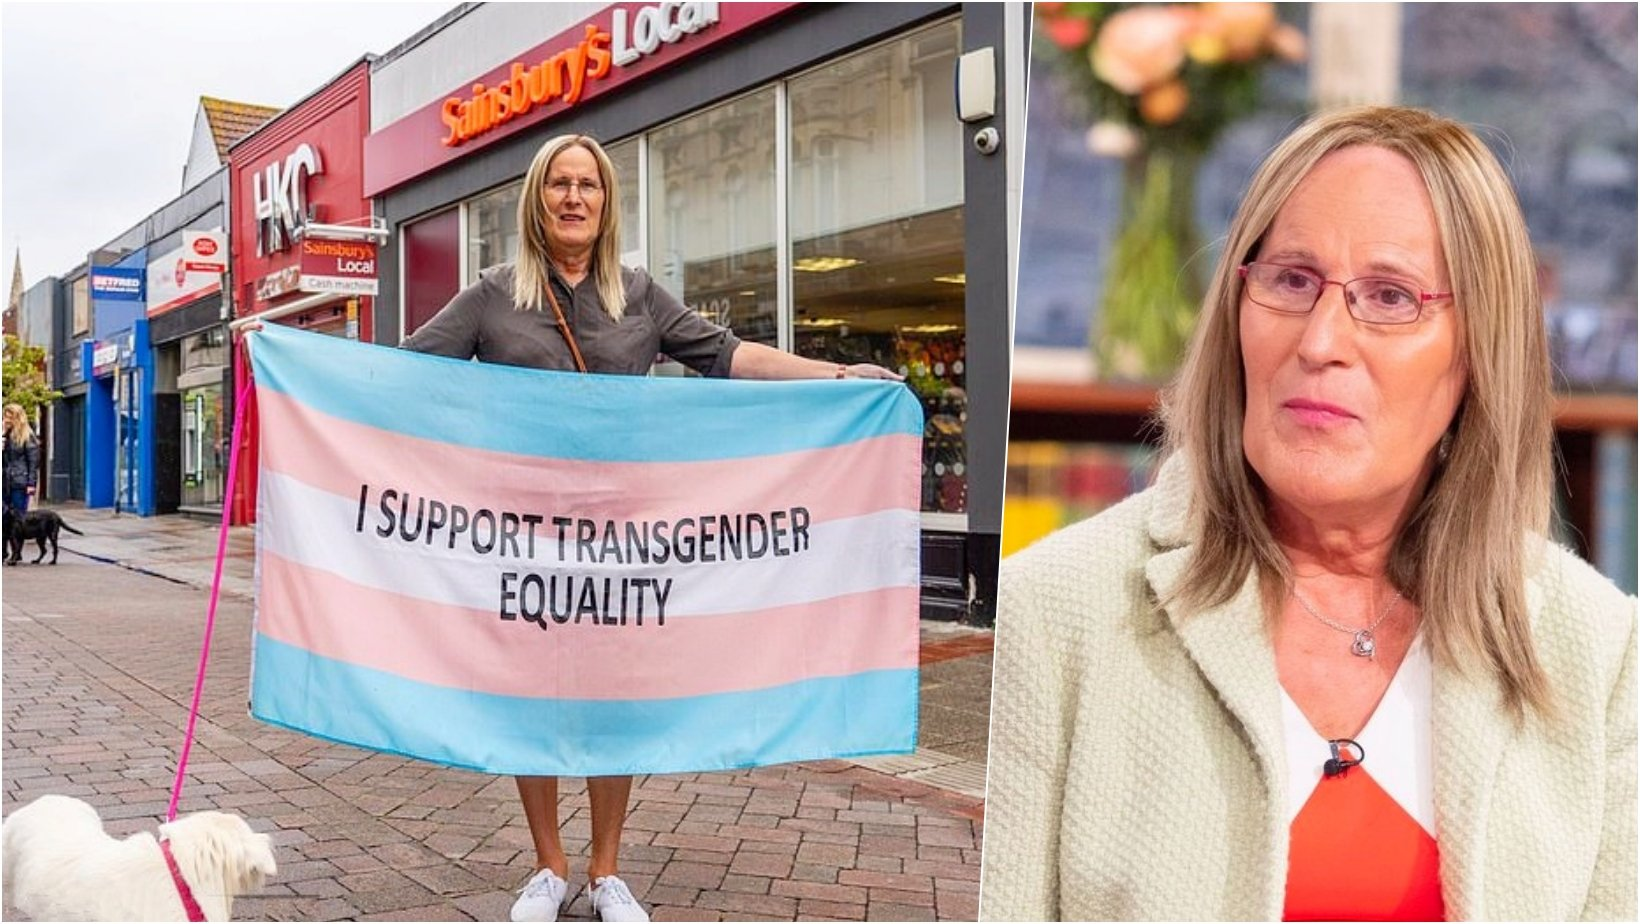 6 facebook cover 21.jpg?resize=412,275 - Transgender Woman Sues Supermarket For Harassment After A Store Worker Made Insulting Comments About Her